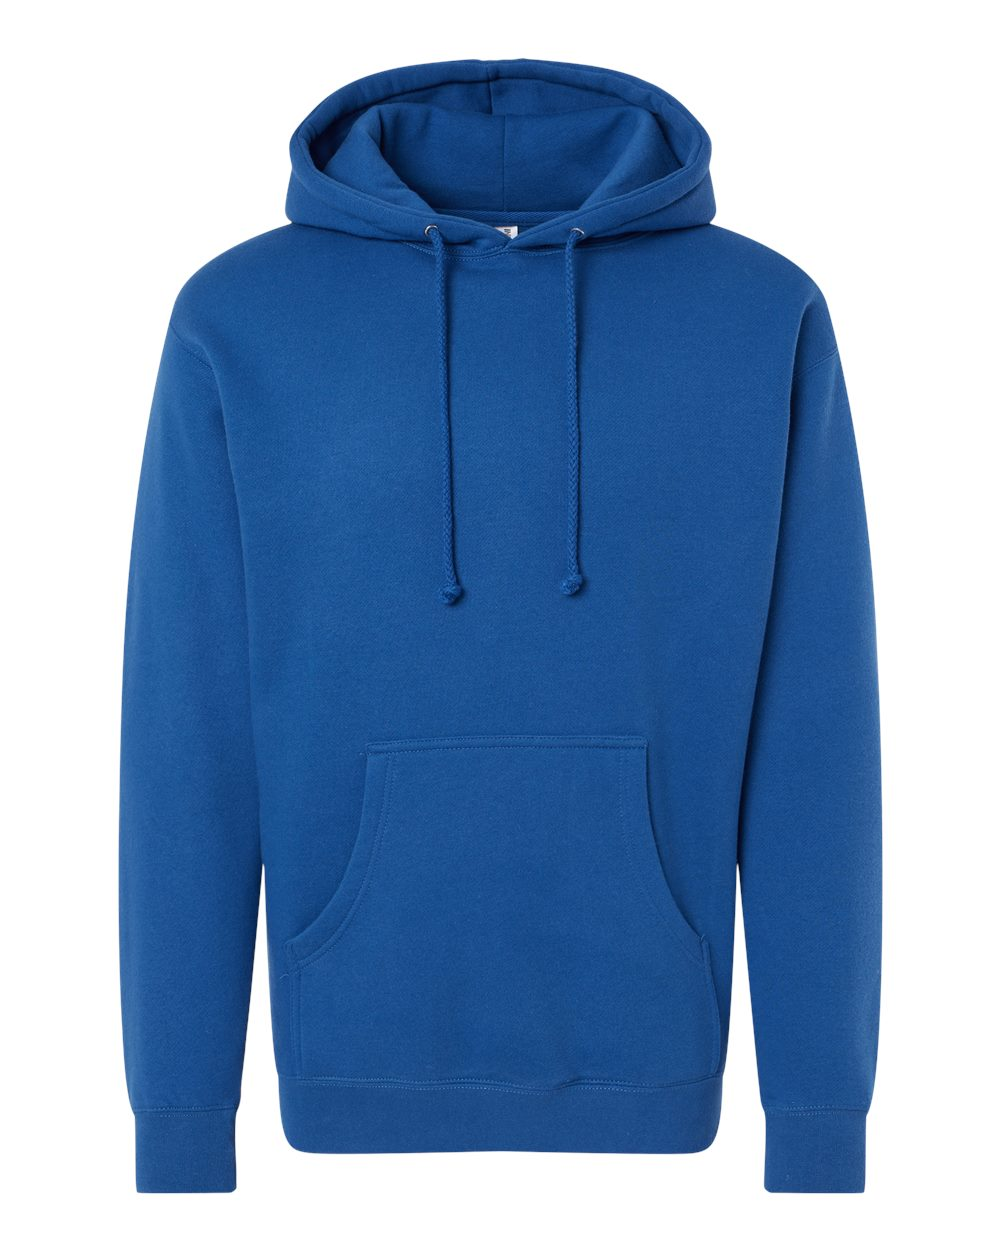 Independent-Trading-Co-Mens-Hooded-Pullover-Sweatshirt-IND4000-up-to-3XL miniature 63